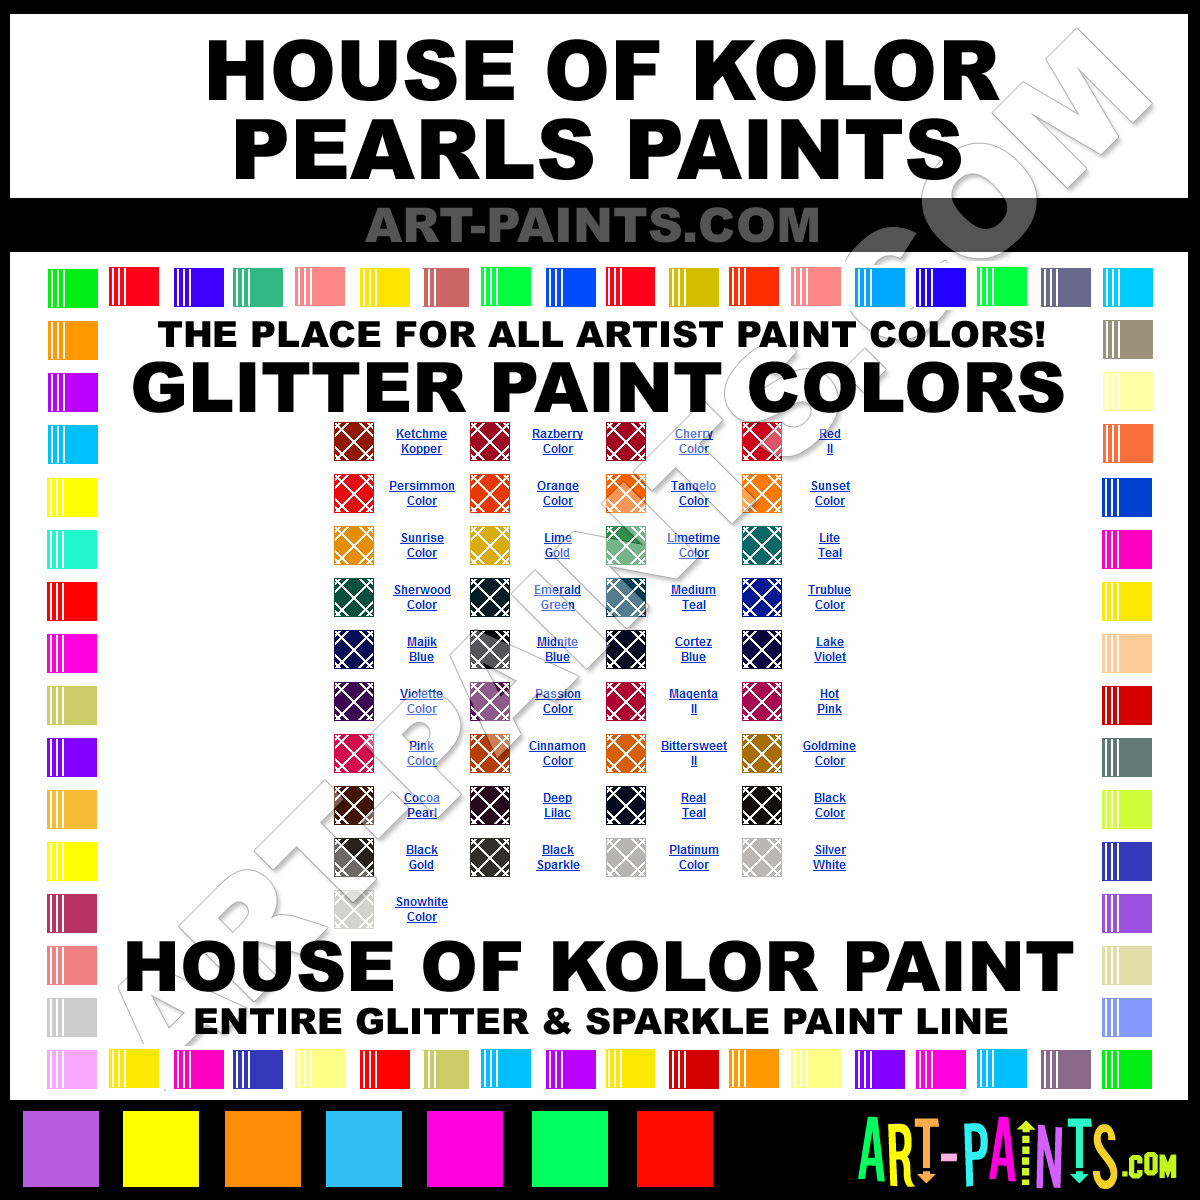 House Of Kolor Pearl Color Chart Limetime Pearls Glitter